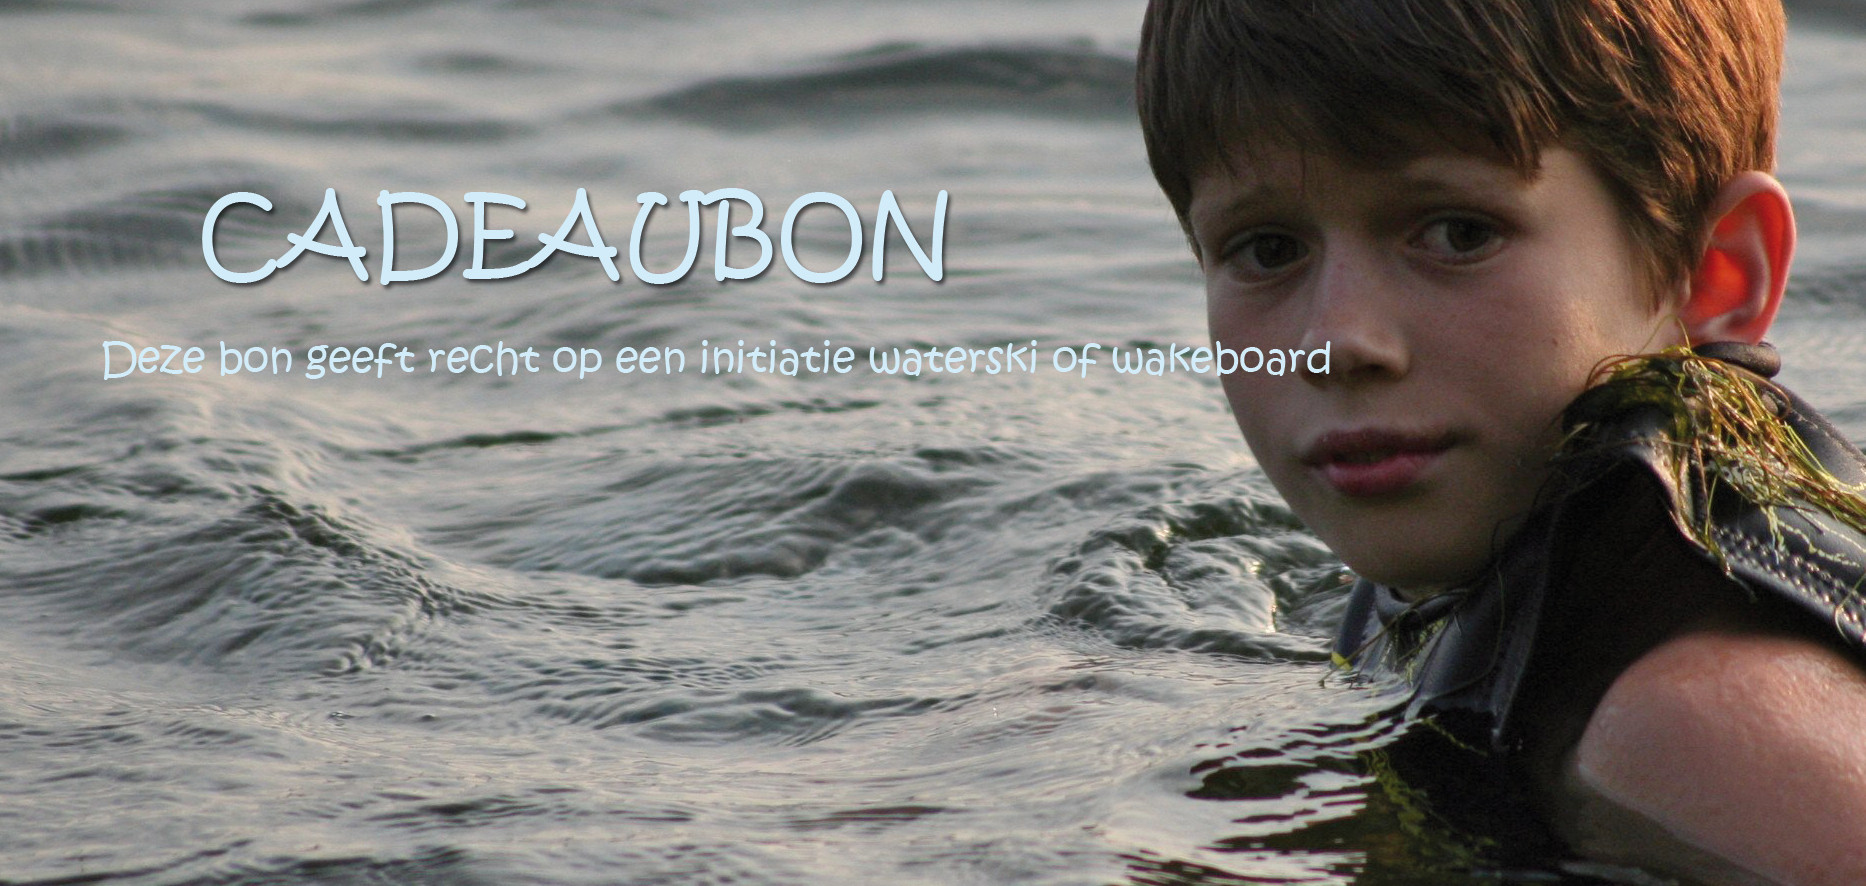 images/recreatie-promotie-waterskibon.jpg